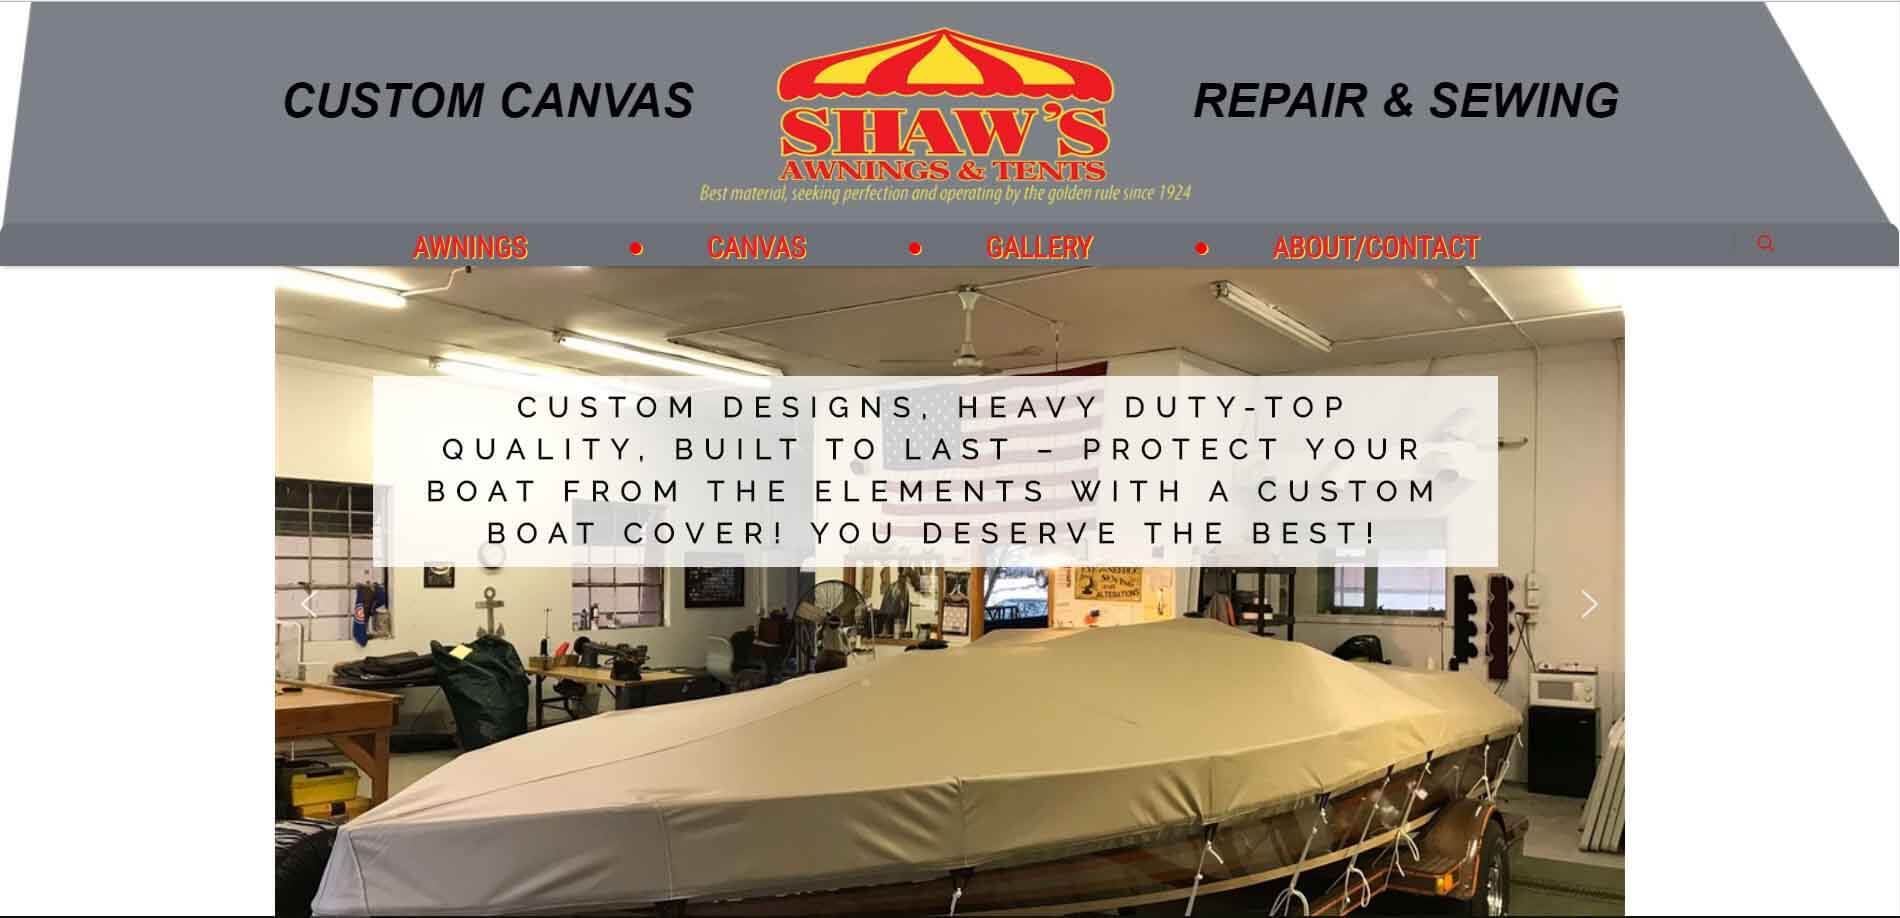 Shaw's Awnings And Tents